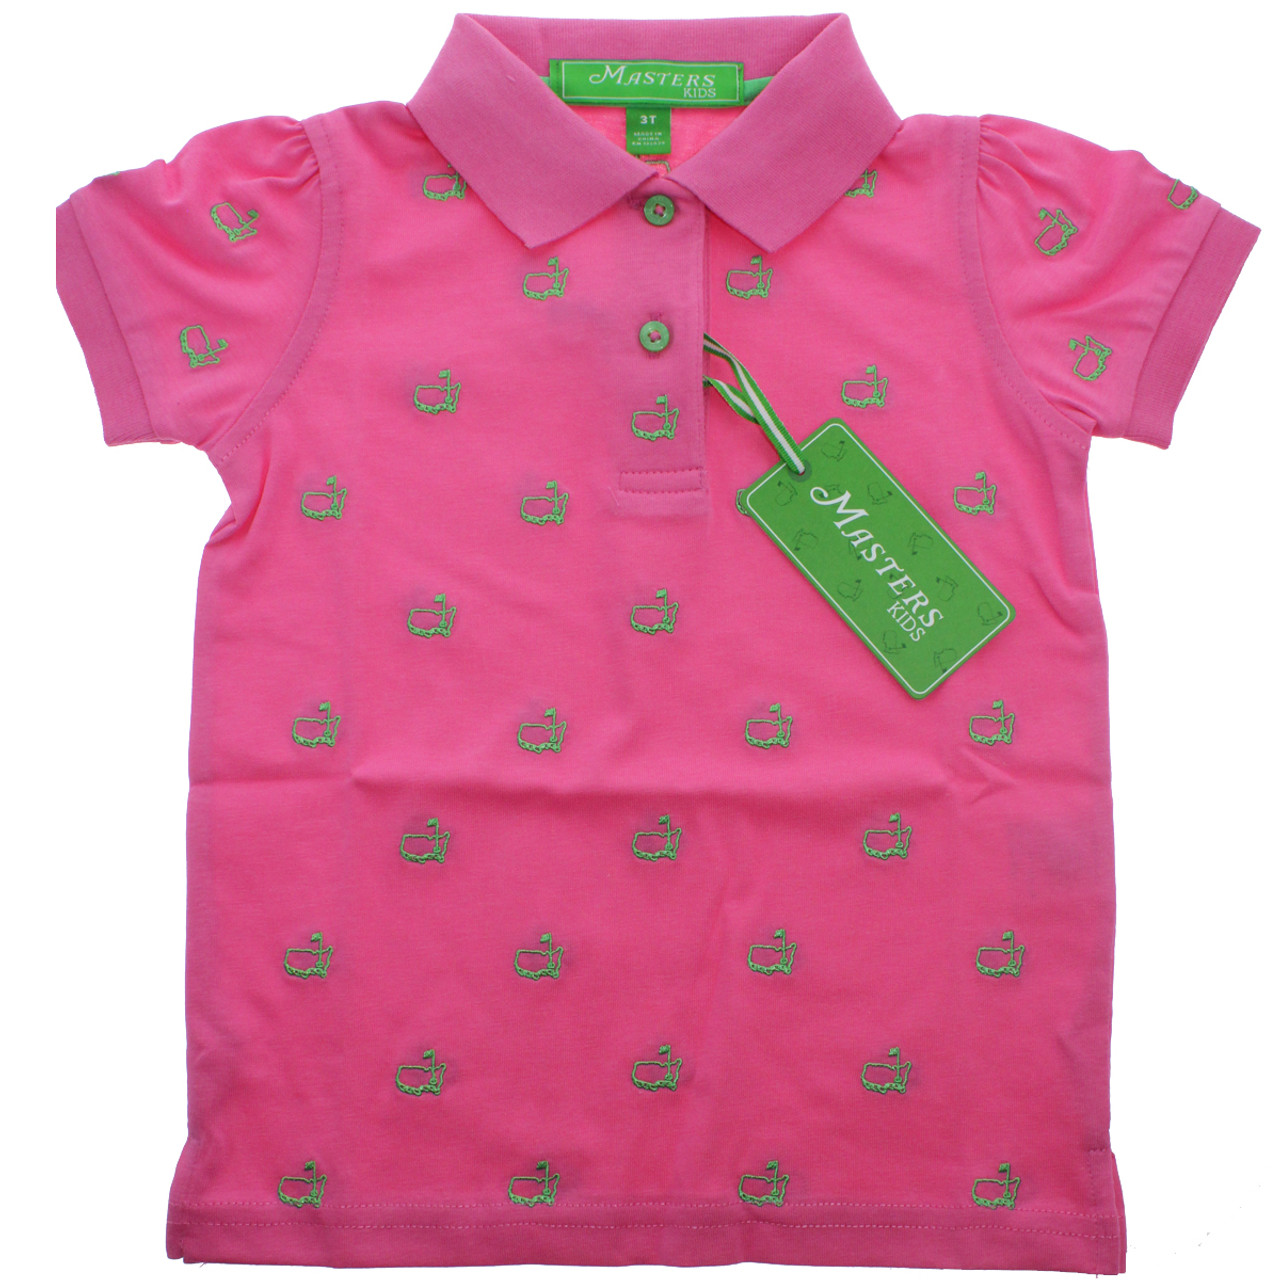 ffdf61a9f Masters Pink Toddler Polo Shirt